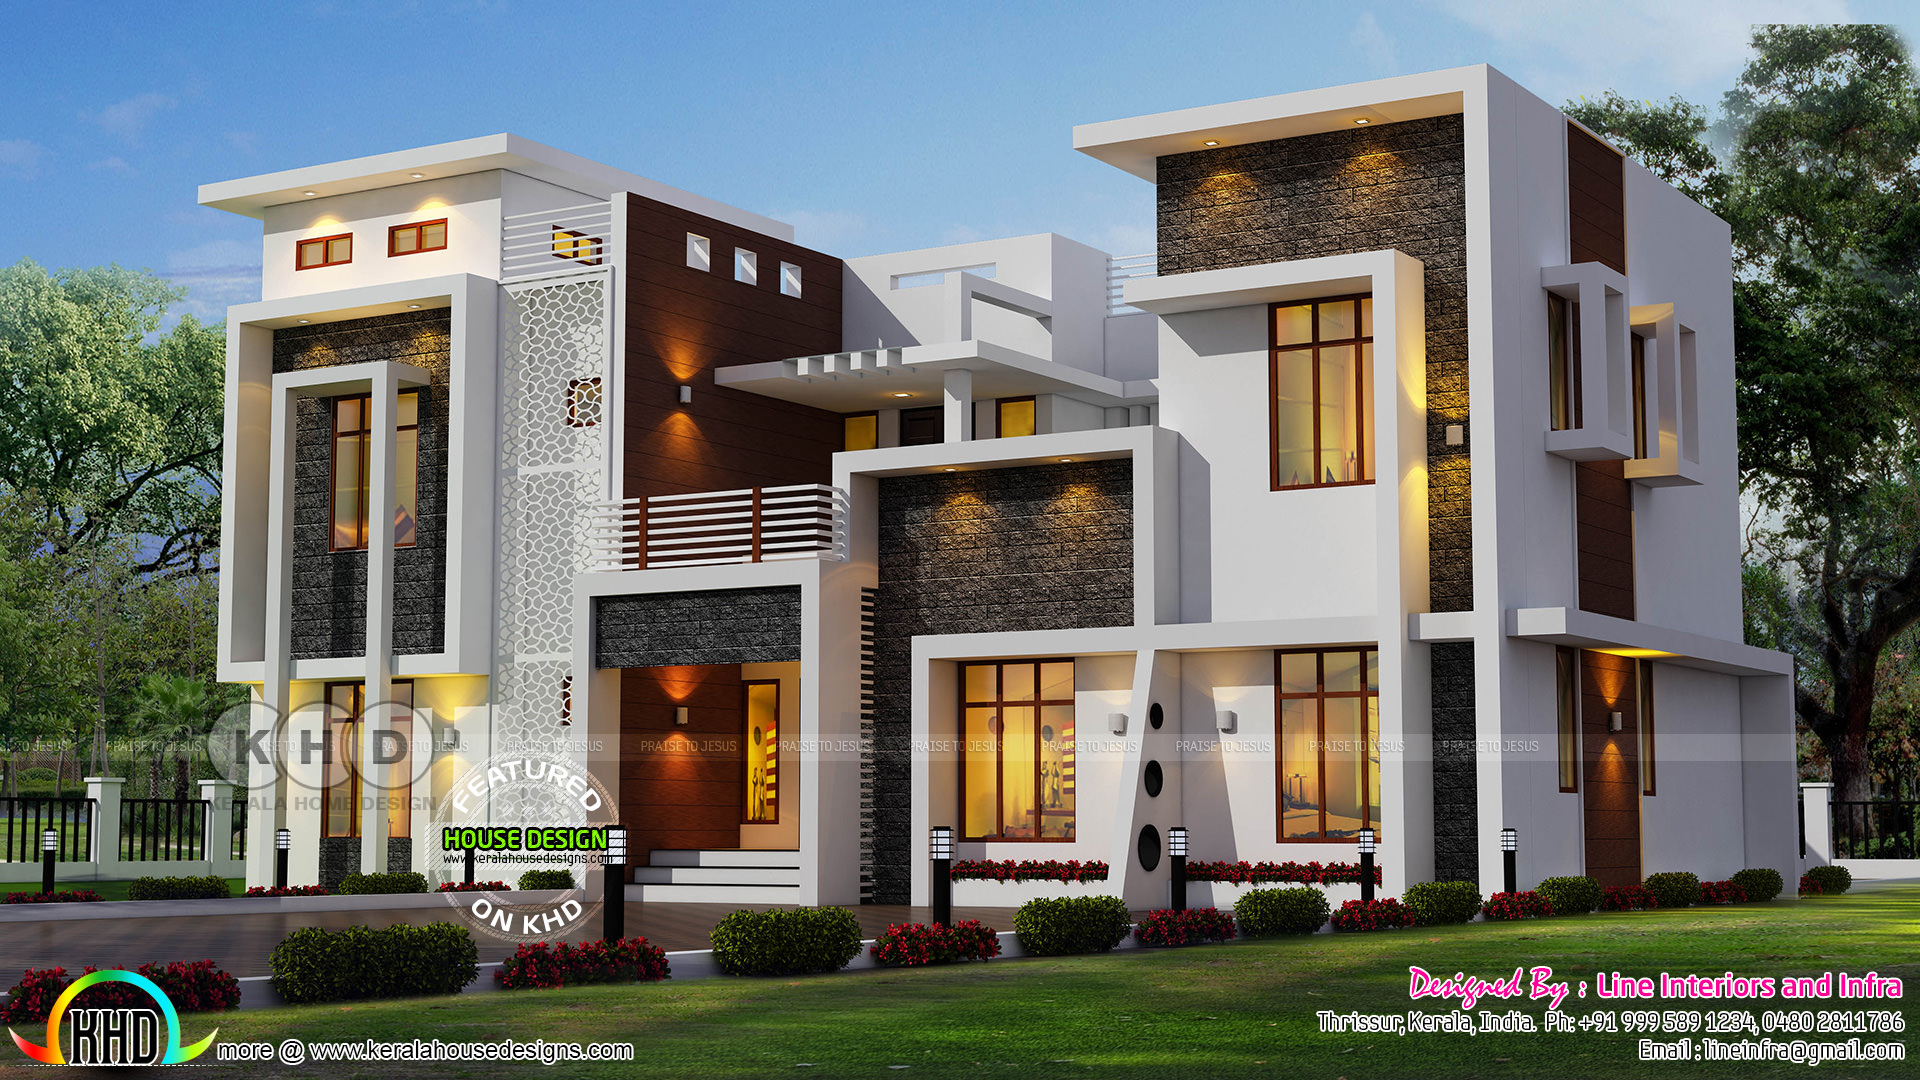 contemporary house designs | ... sq.feet 4 bedroom villa design - Kerala  home design and floor plans | Ideas for the House | Pinterest | Villa design,  ...